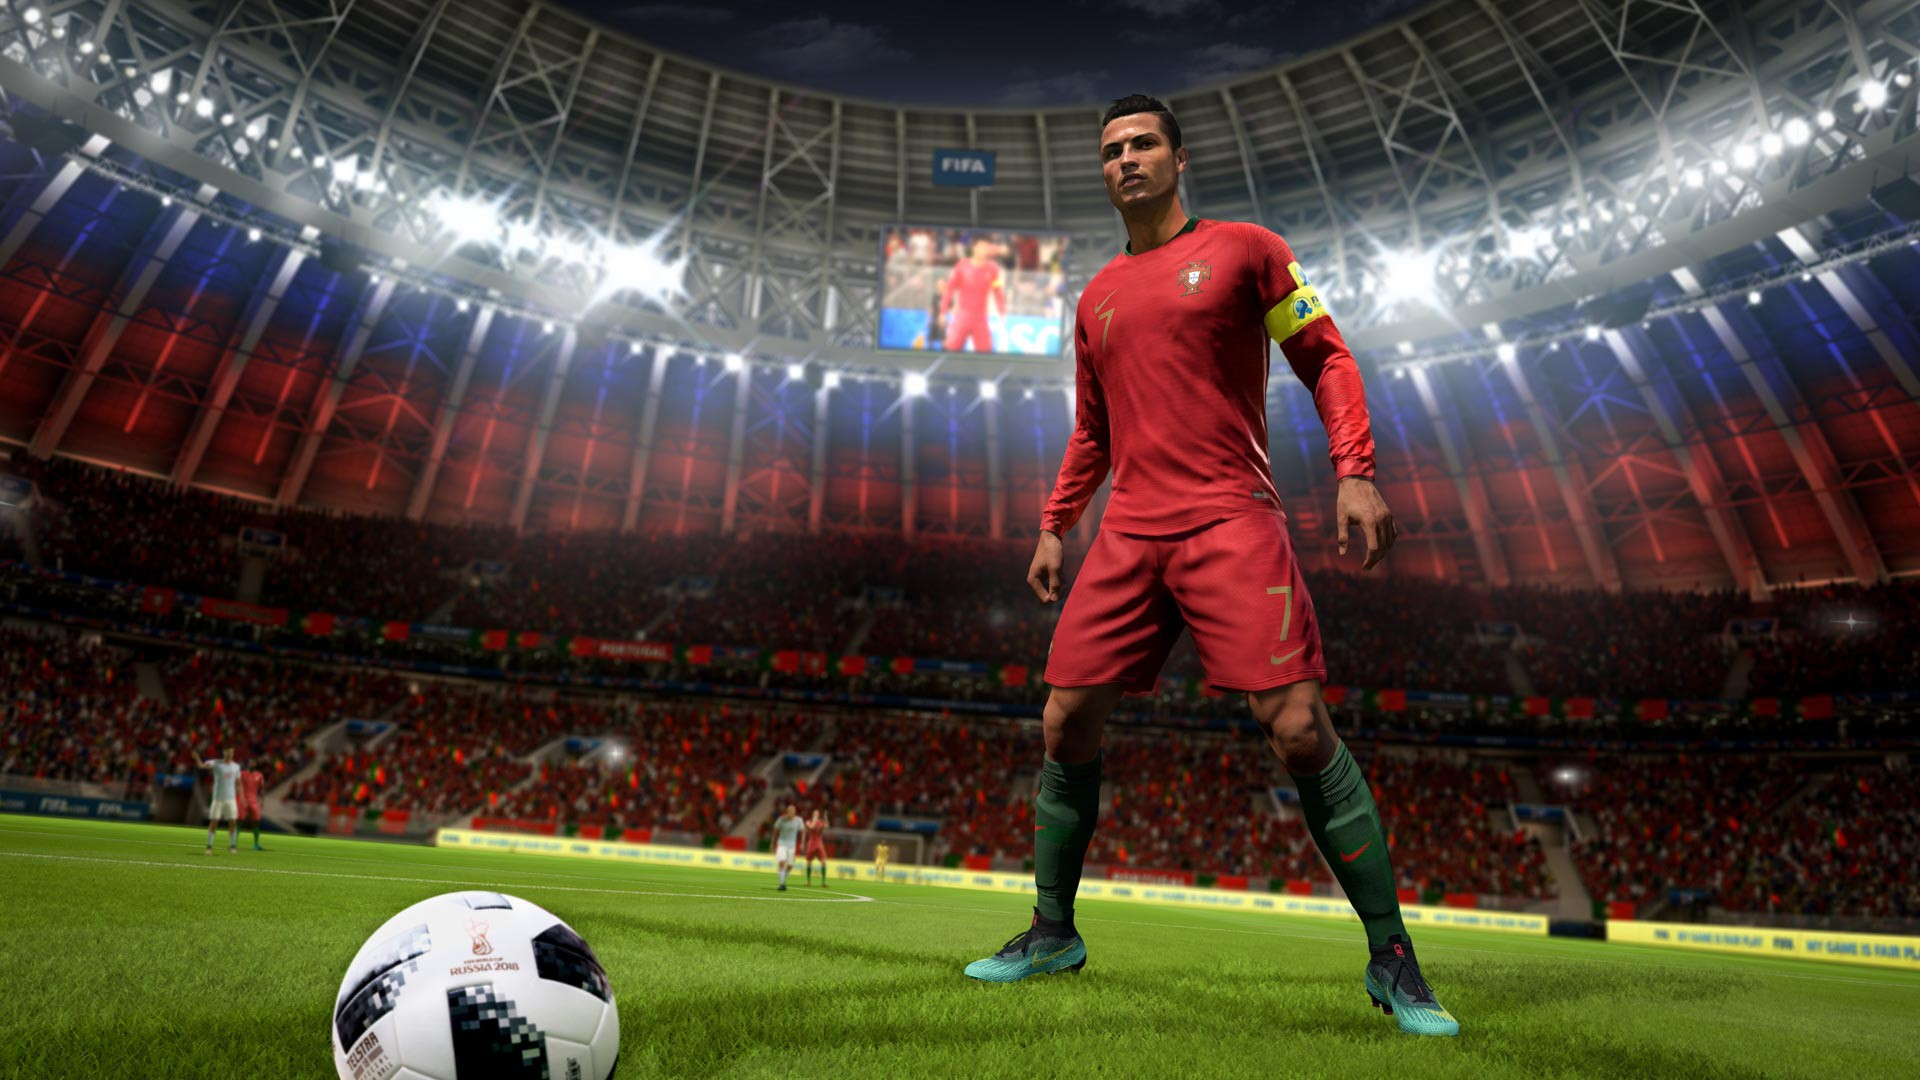 Find the best laptop for FIFA 18